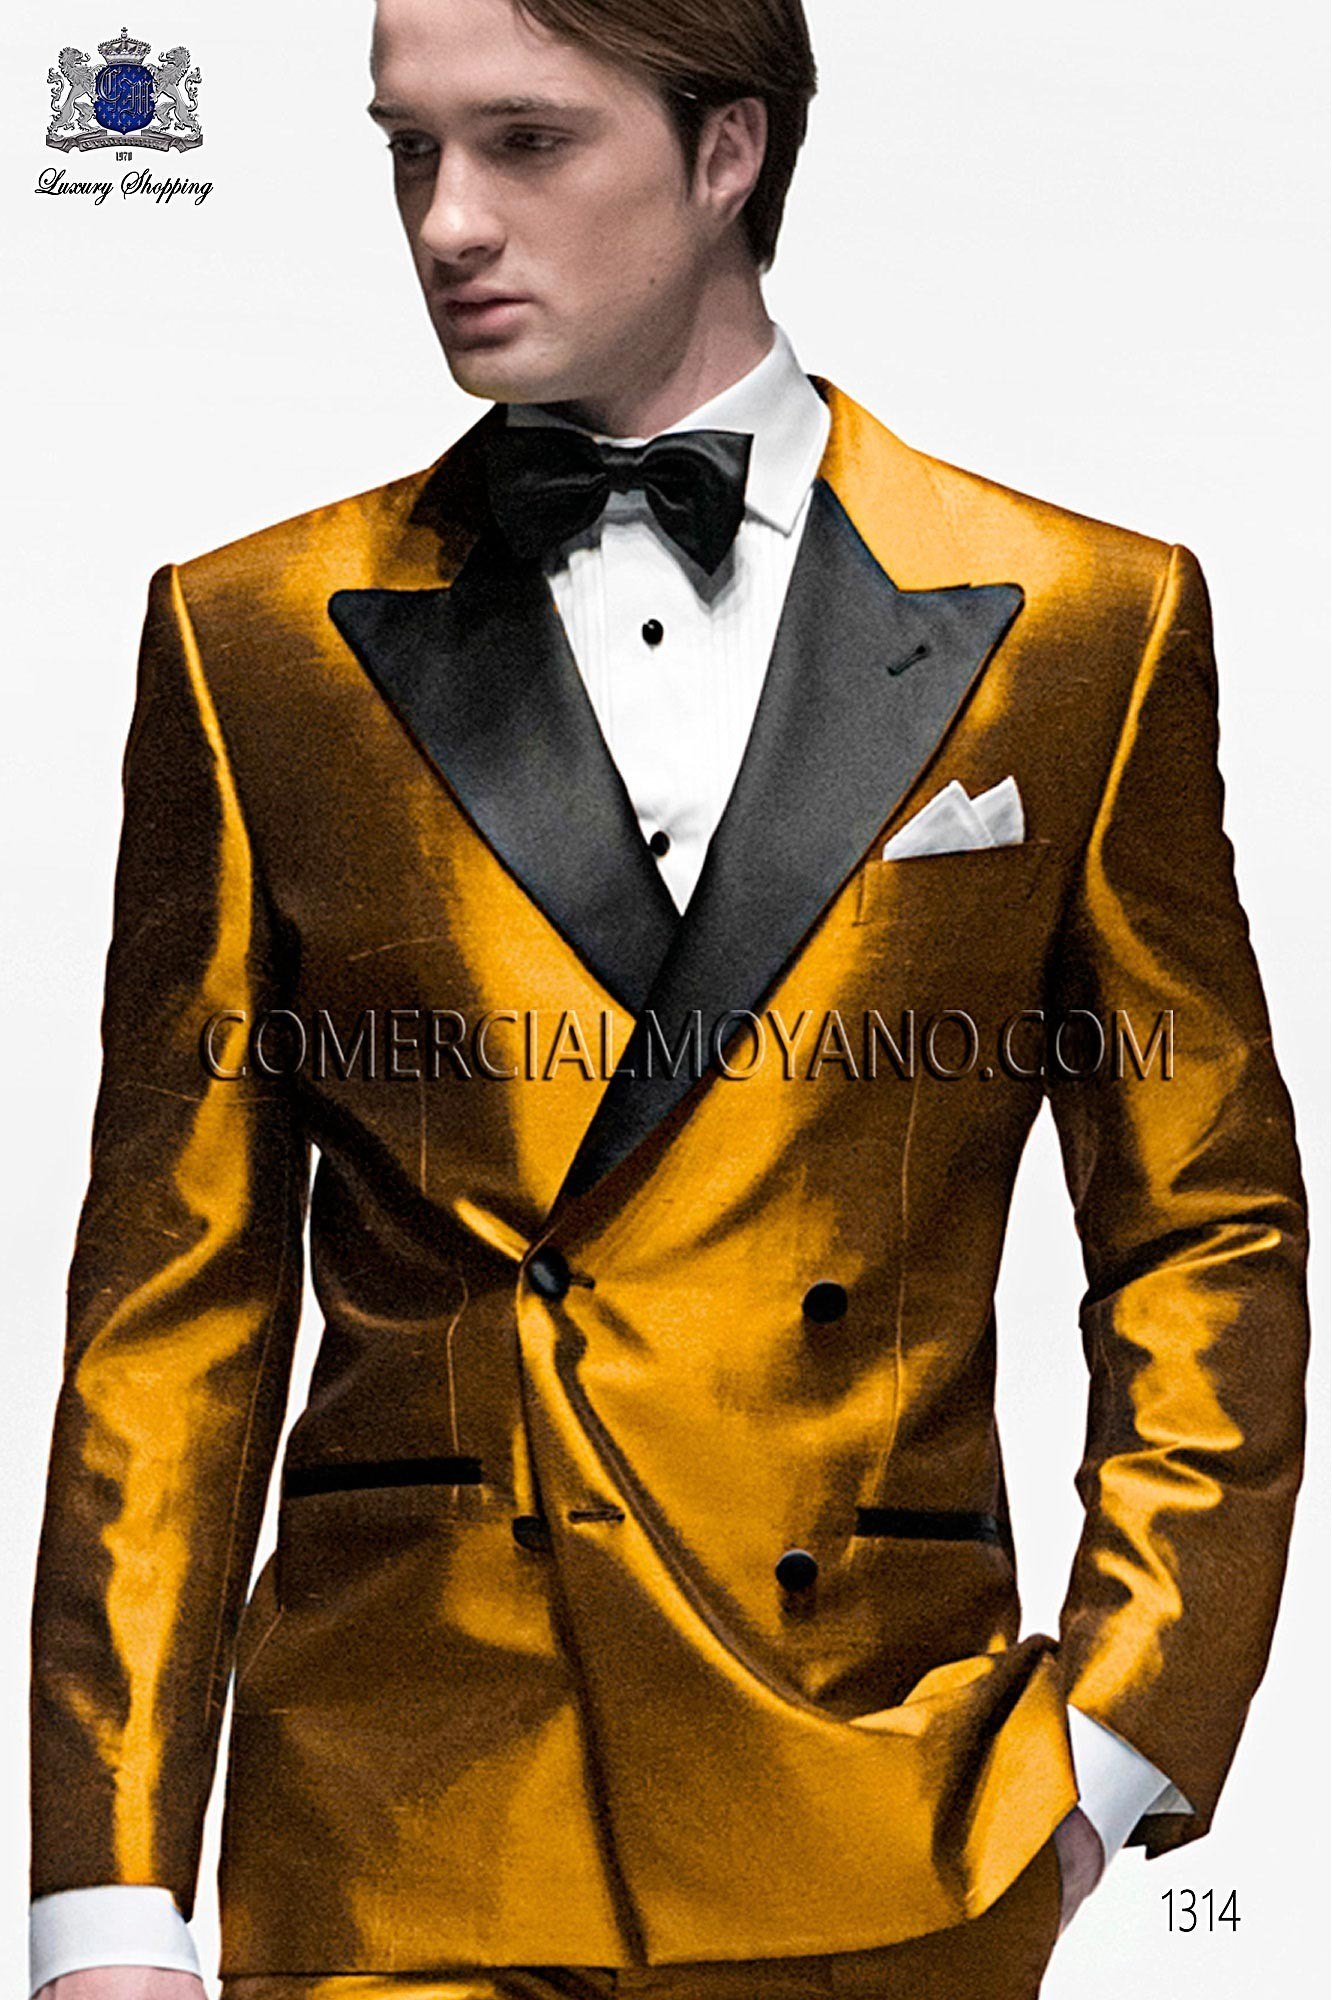 Black Tie Gold men wedding suit, model: 1314 Ottavio Nuccio Gala ...